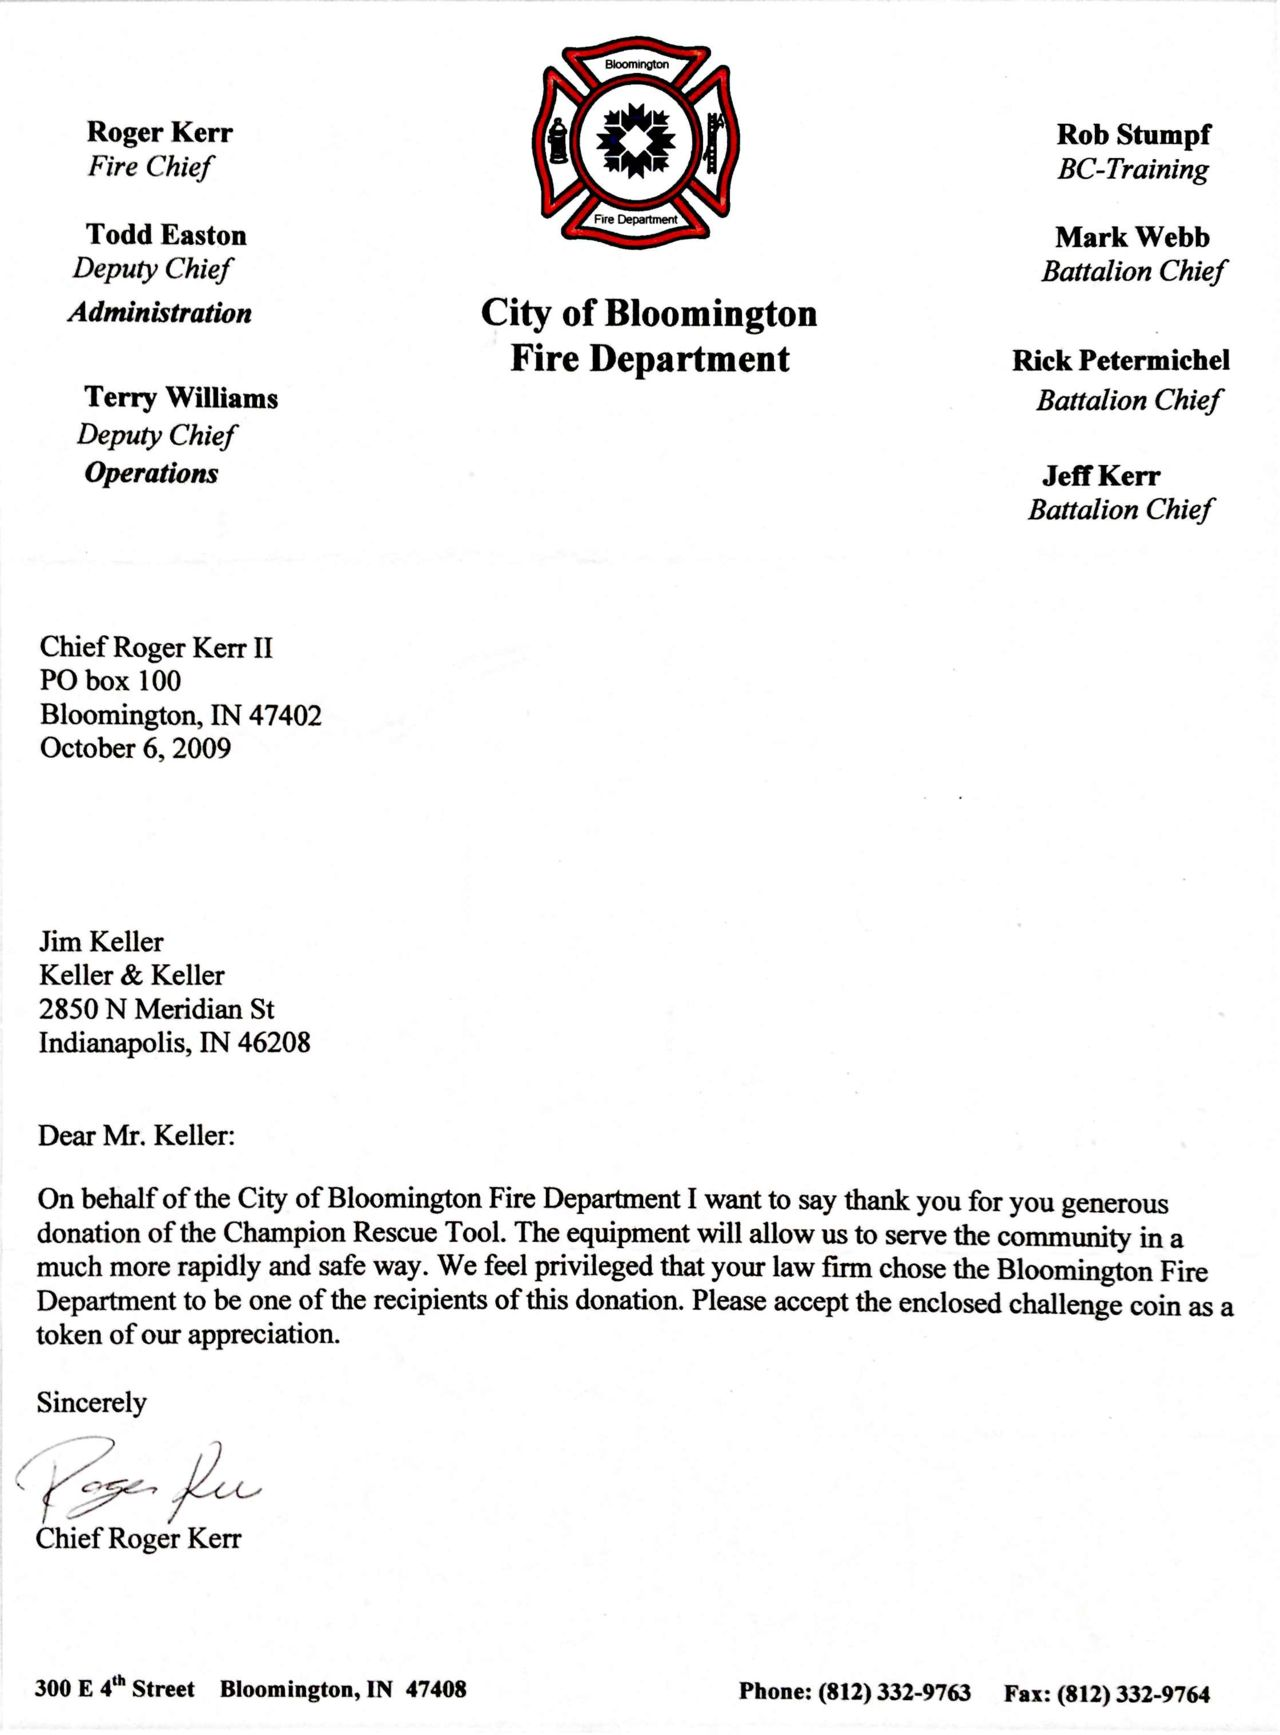 City of Bloomington Fire Department Thank You Letter